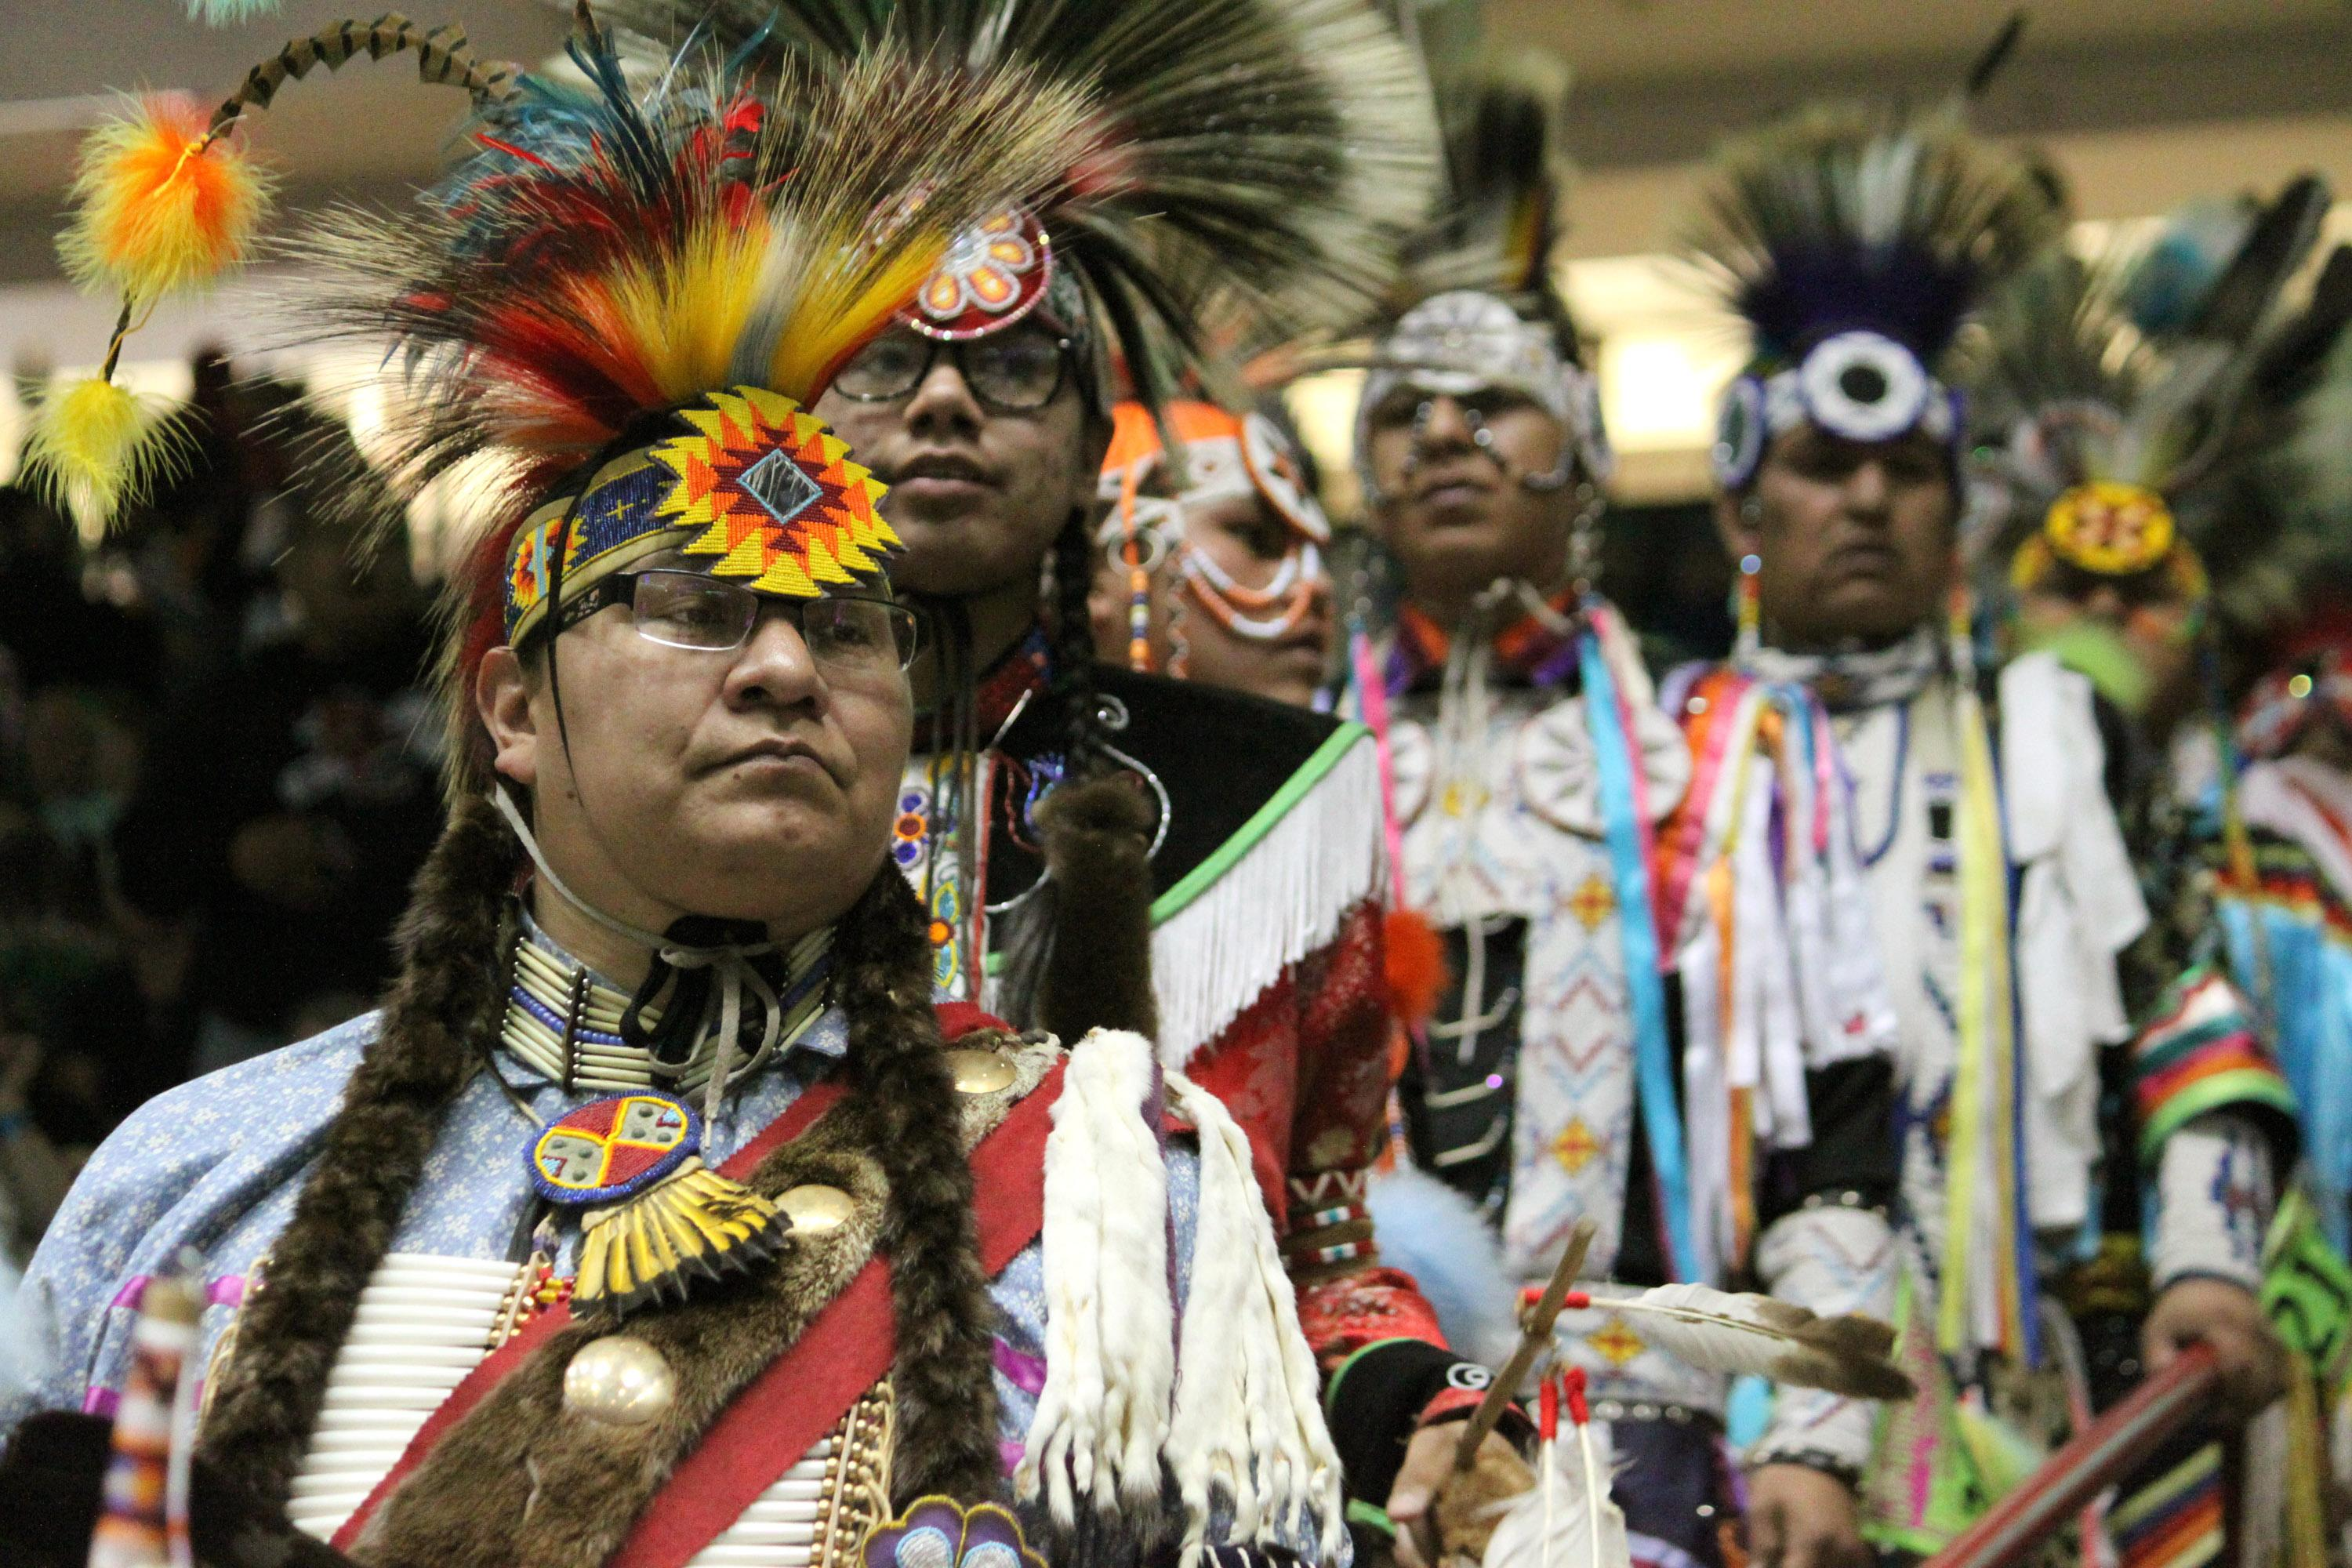 North America's largest powwow draws thousands to New Mexico